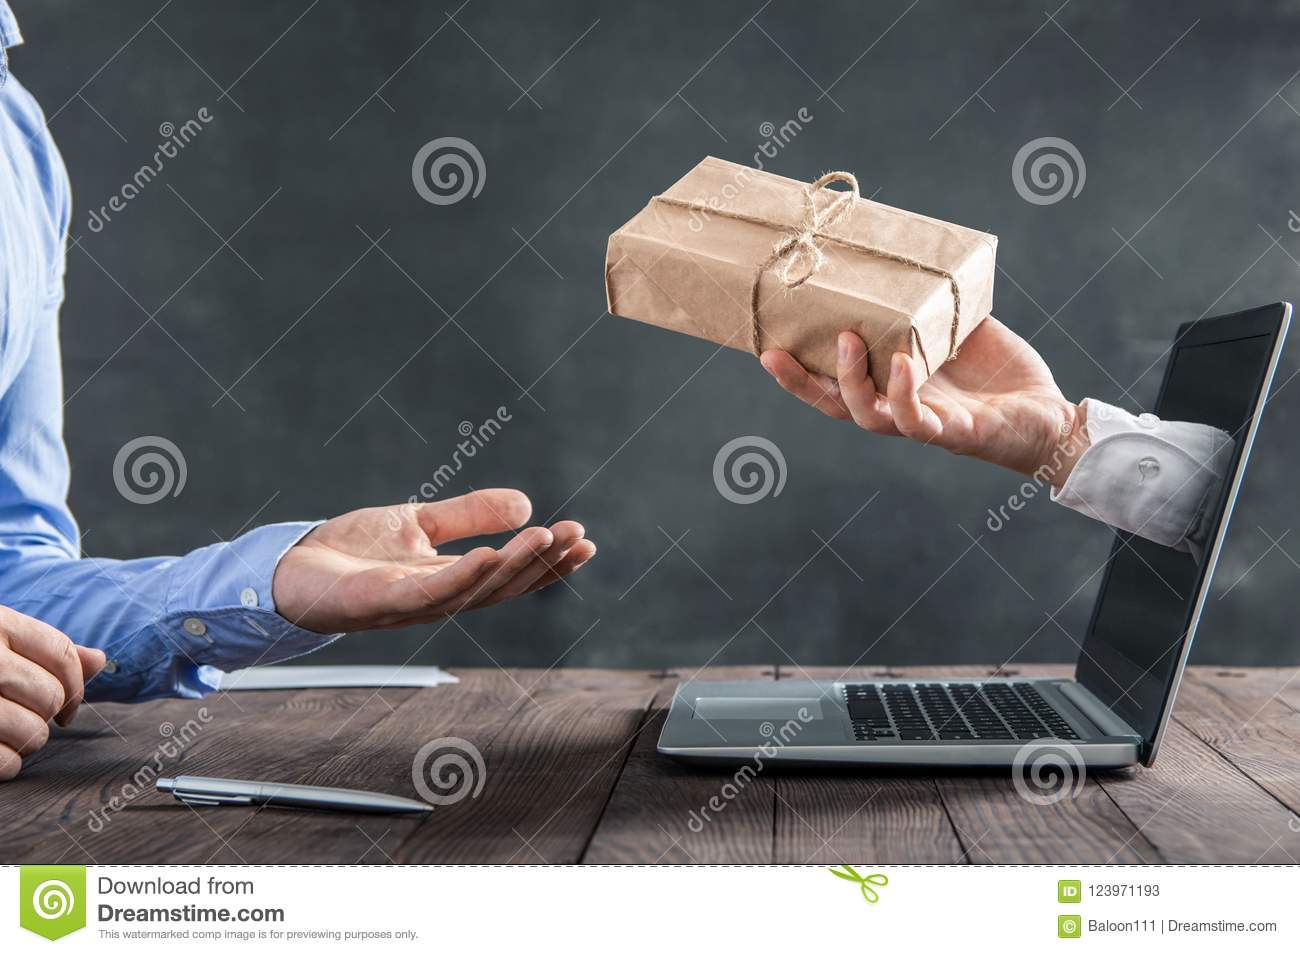 Hand coming out of the laptop gives the package